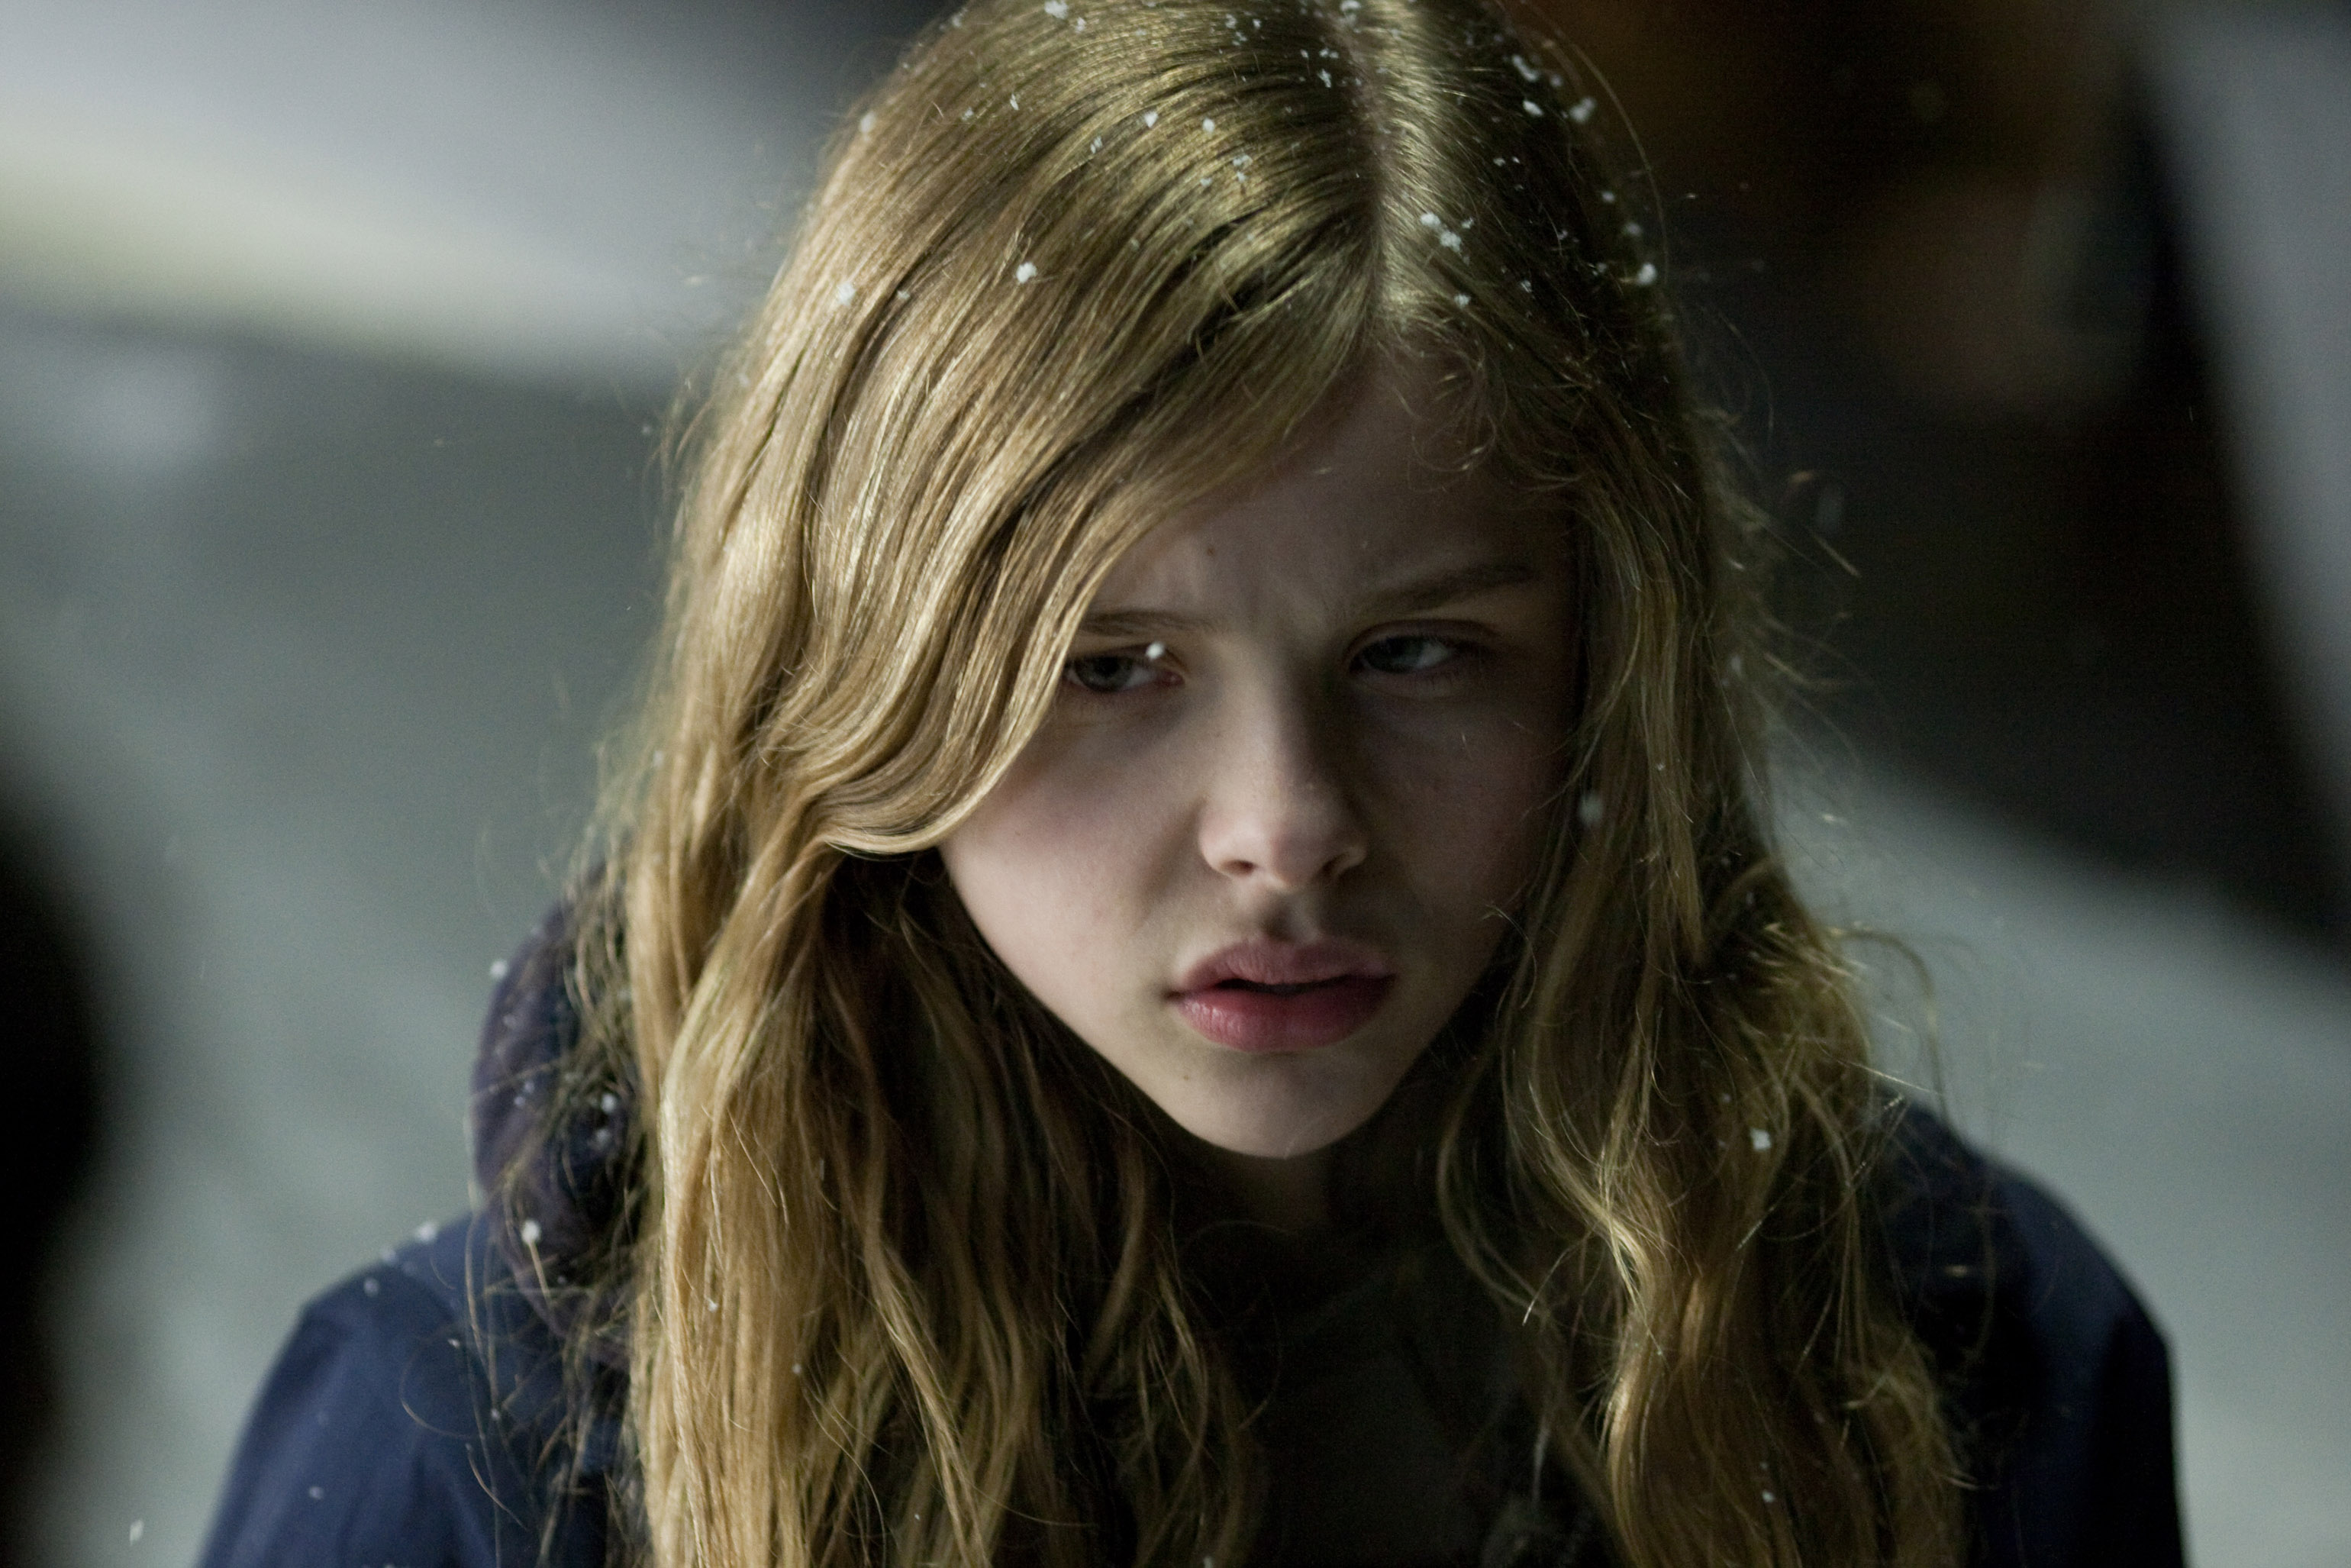 Chloe Grace Moretz Let Me in Vampire